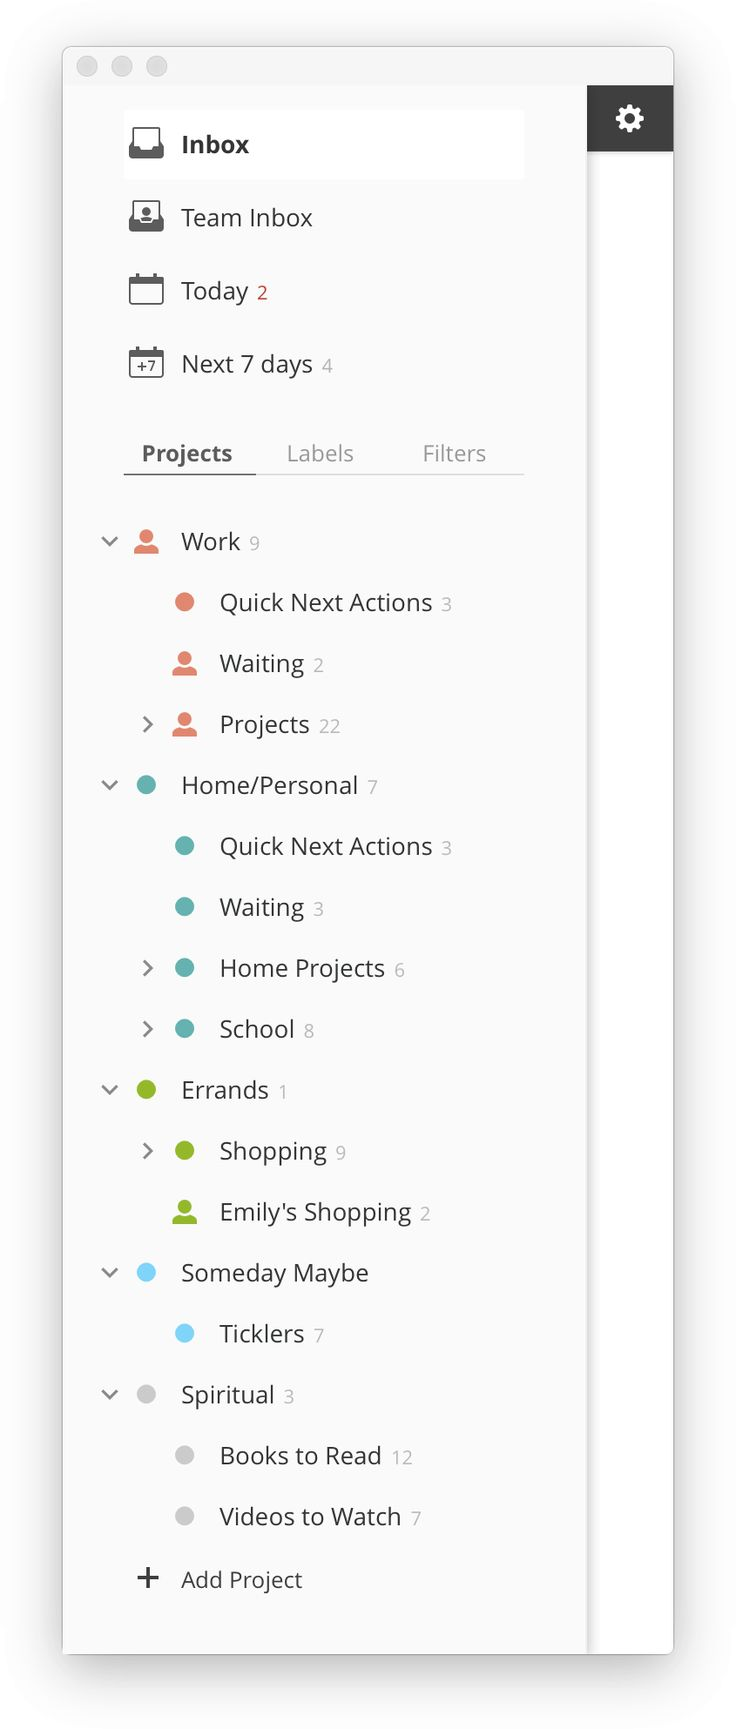 I'm going to show you how to set up your task lists in the most productive way that will give you the most successful results. I'm also going to share some best practices and techniques for process…